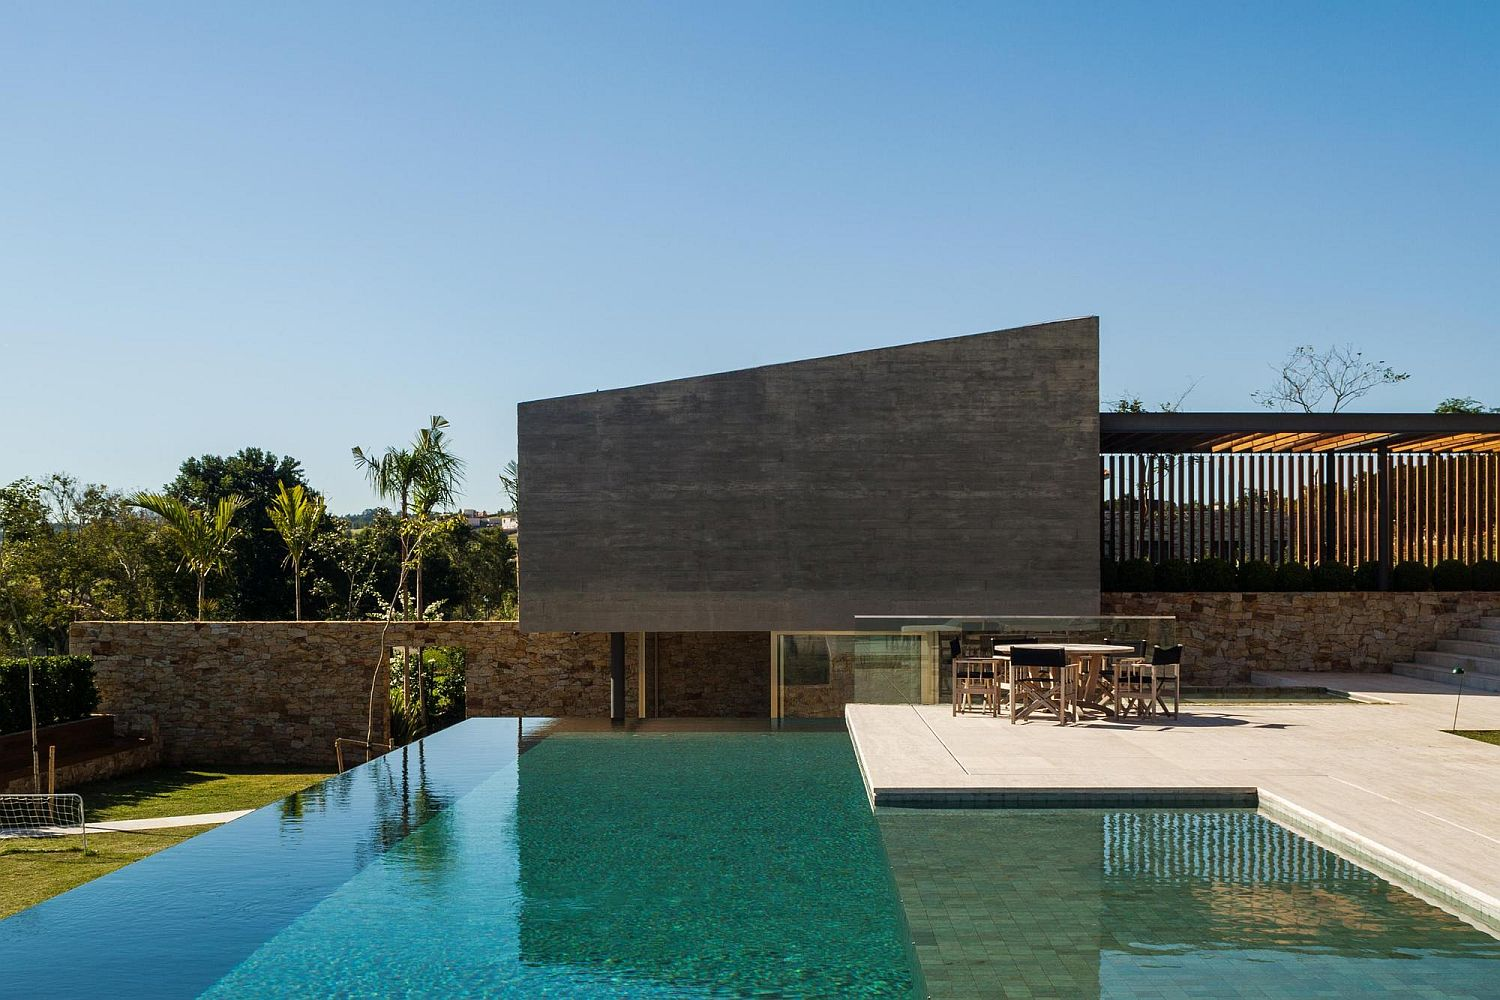 Pool and deck at the lavish home